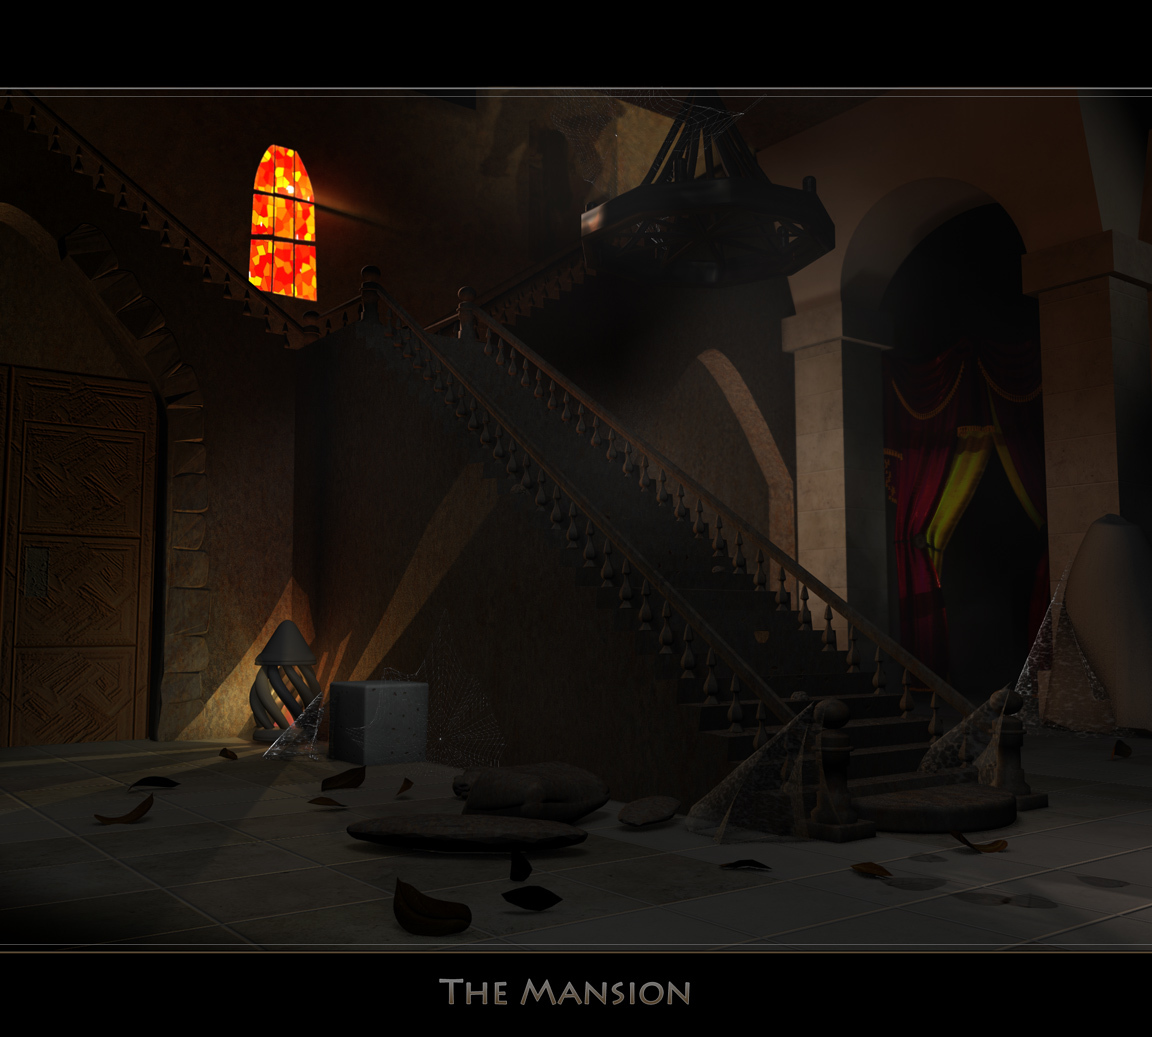 the Mansion by ronjonk